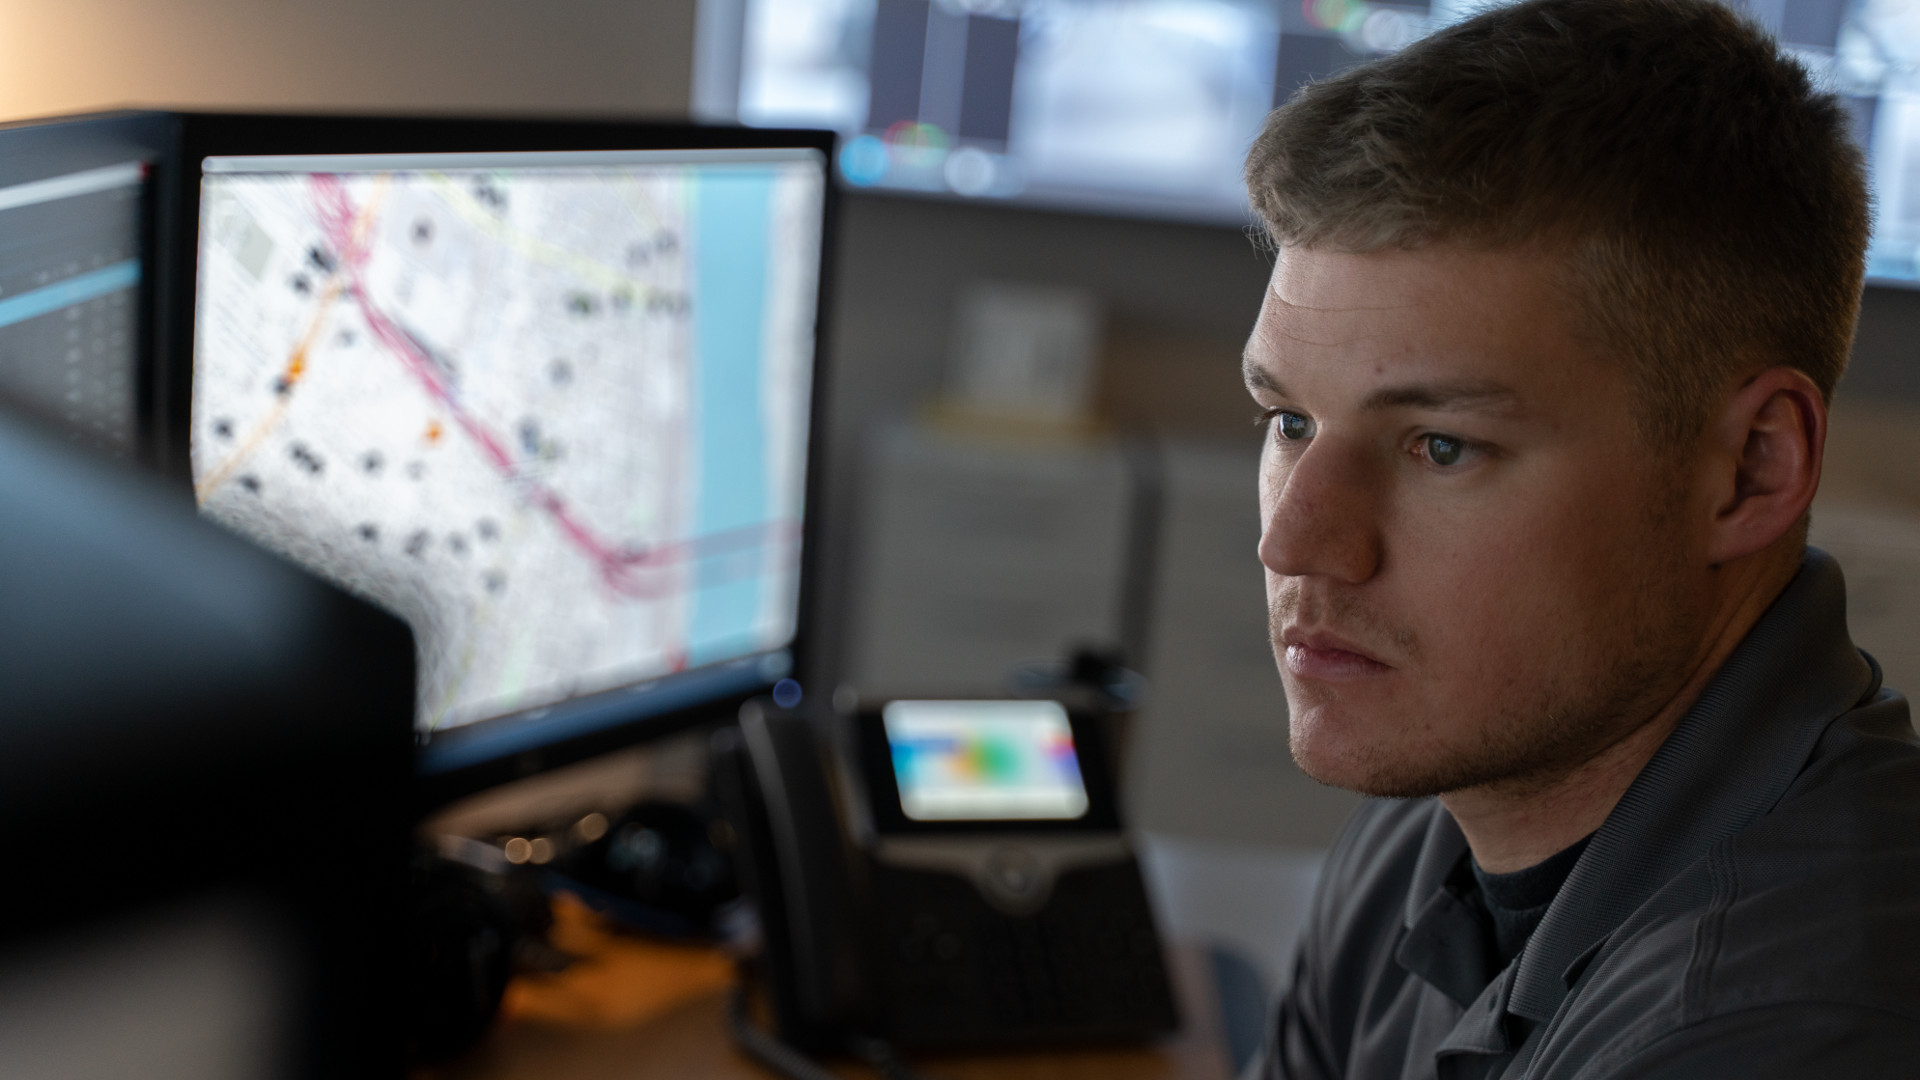 Man Looking at CommandCentral Investigate Crime Analysis Software